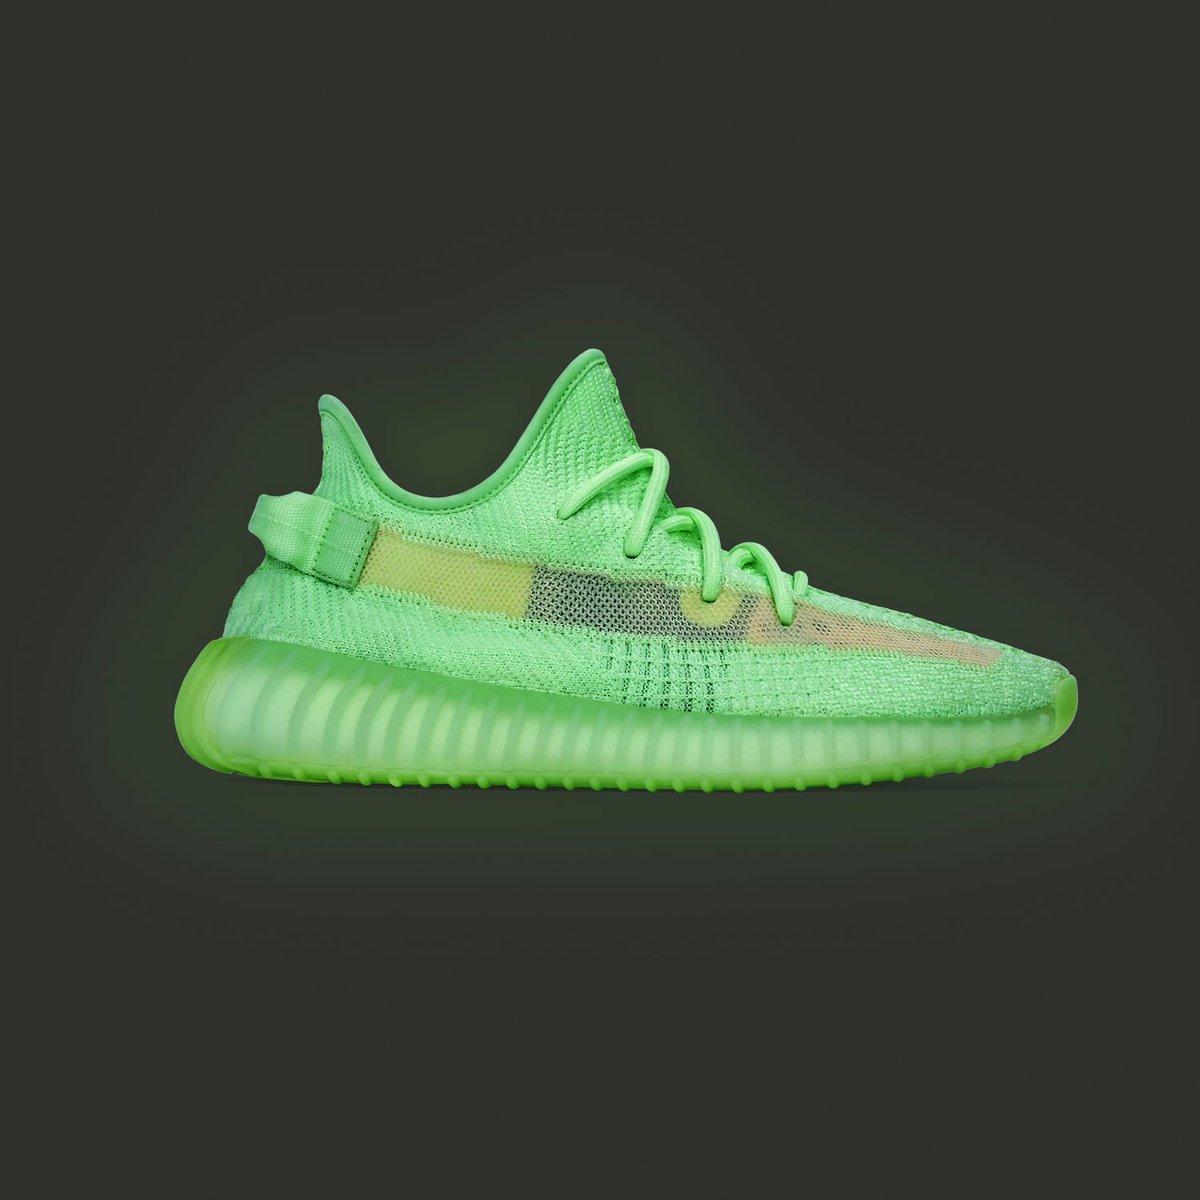 c17c1f8f2 YEEZY BOOST 350 V2 GID GLOW IN THE DARK RELEASING MAY 25 IN FULL FAMILY  SIZING PRE-ORDER WILL BE AVAILABLE ONE WEEK BEFORE ON http   YEEZYMAFIA.